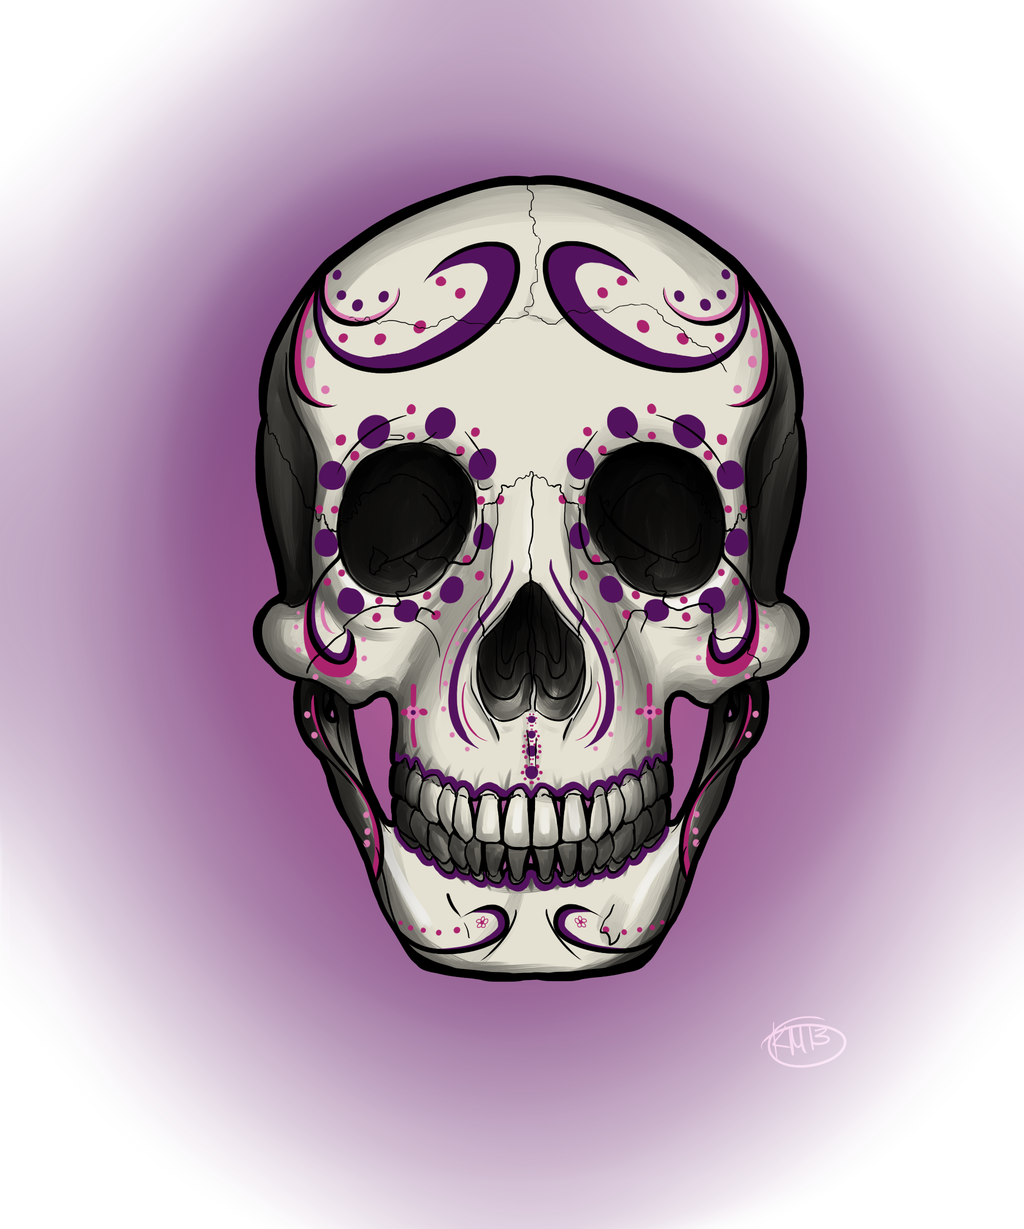 Designs Day Of Dead Png image #28671